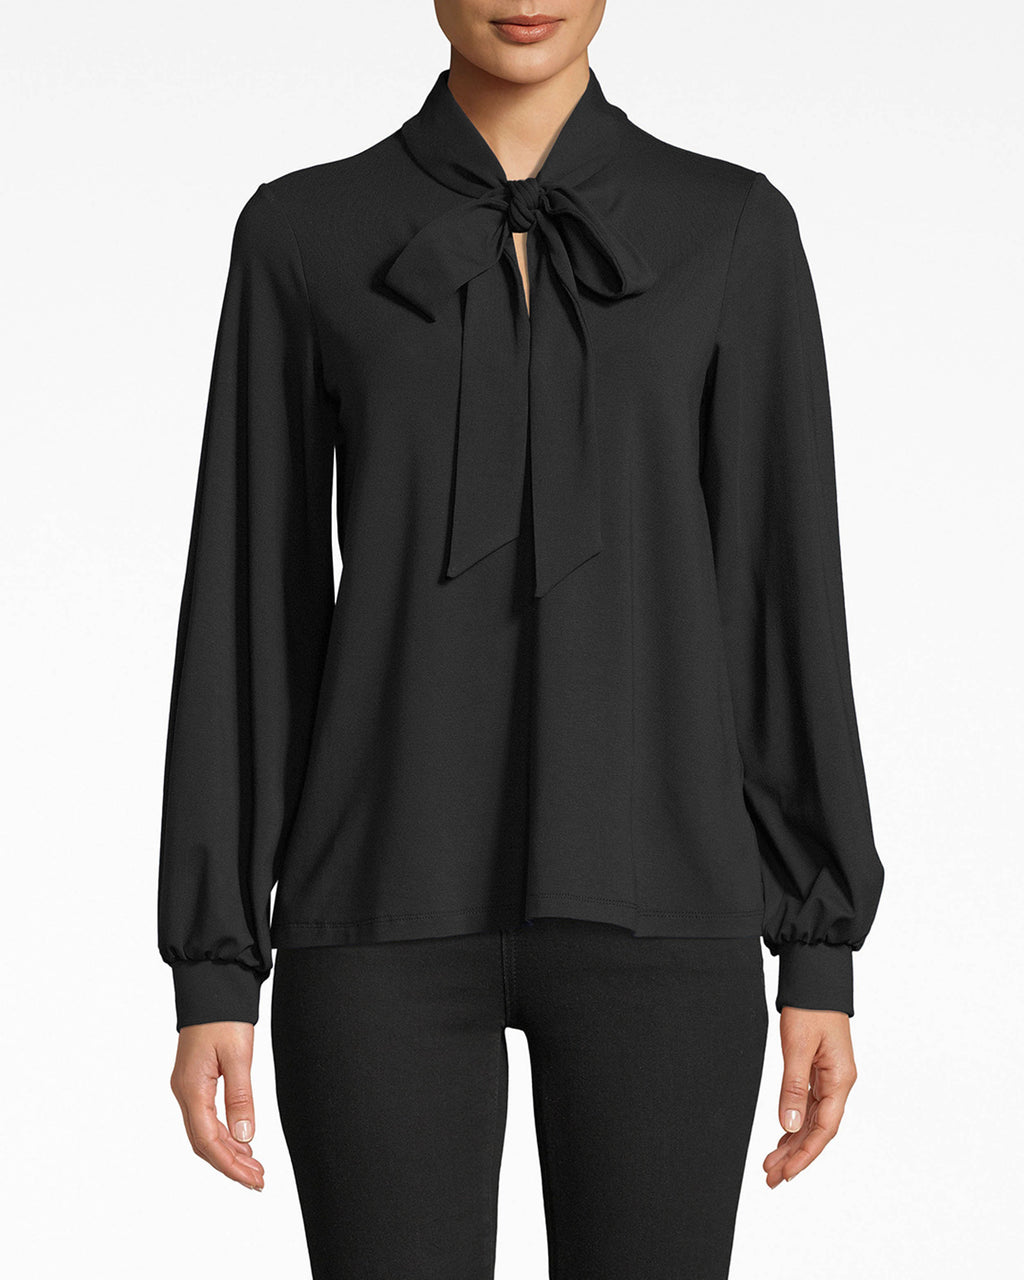 AS10212 - JERSEY STOCK TIE TOP - tops - blouses - Tied to the office? Channel your inner boss with this long sleeve jersey top. The collared neckline streamlines the silhouette so the tie closure can really stand out. The wrist cuffs set the airy, flowy sleeves in place.